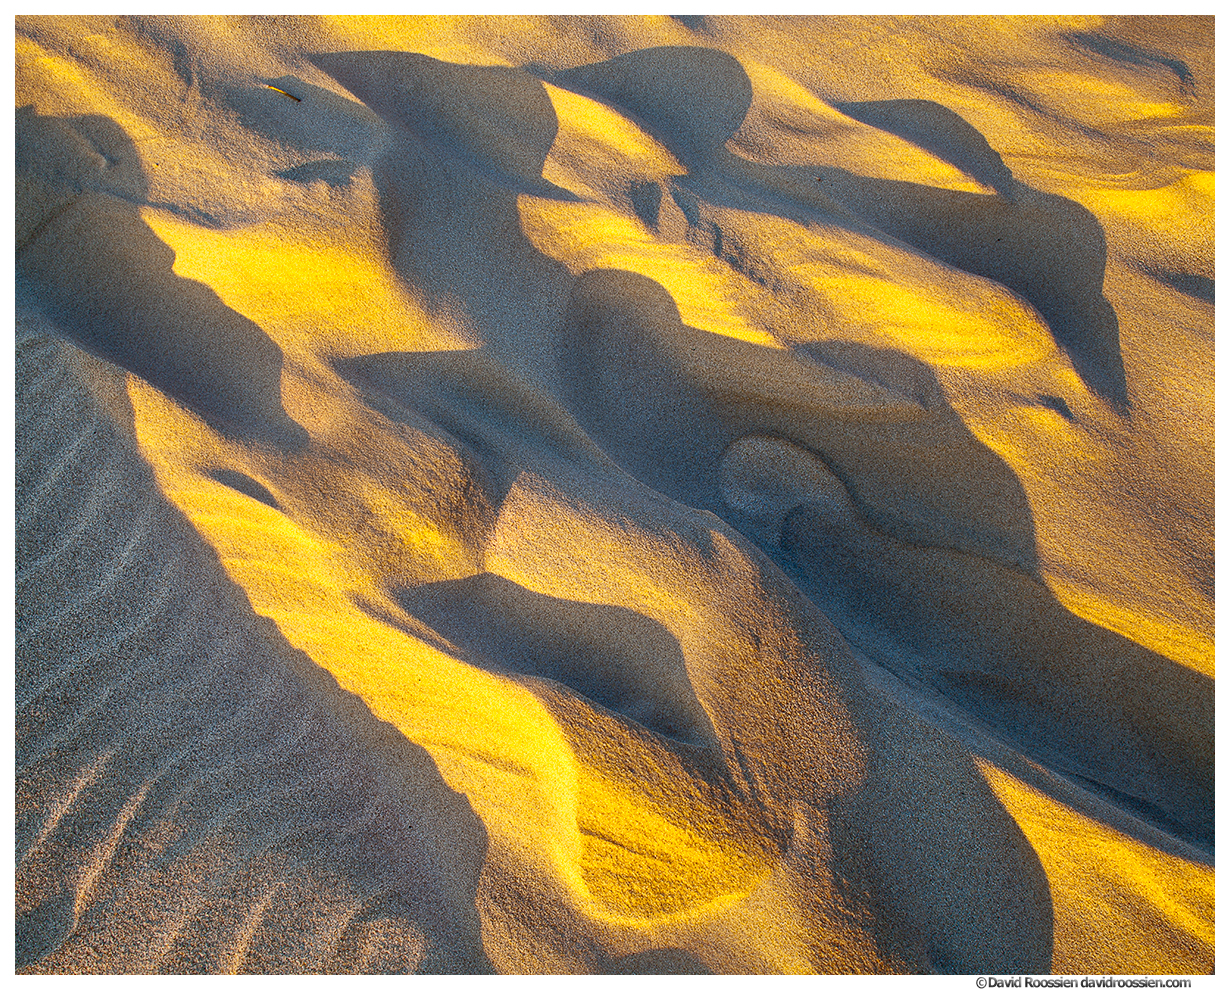 Shadows and Light, Silver Lake Sand Dunes, Silver Lake State Park, Oceana County, Michigan, Spring 2016